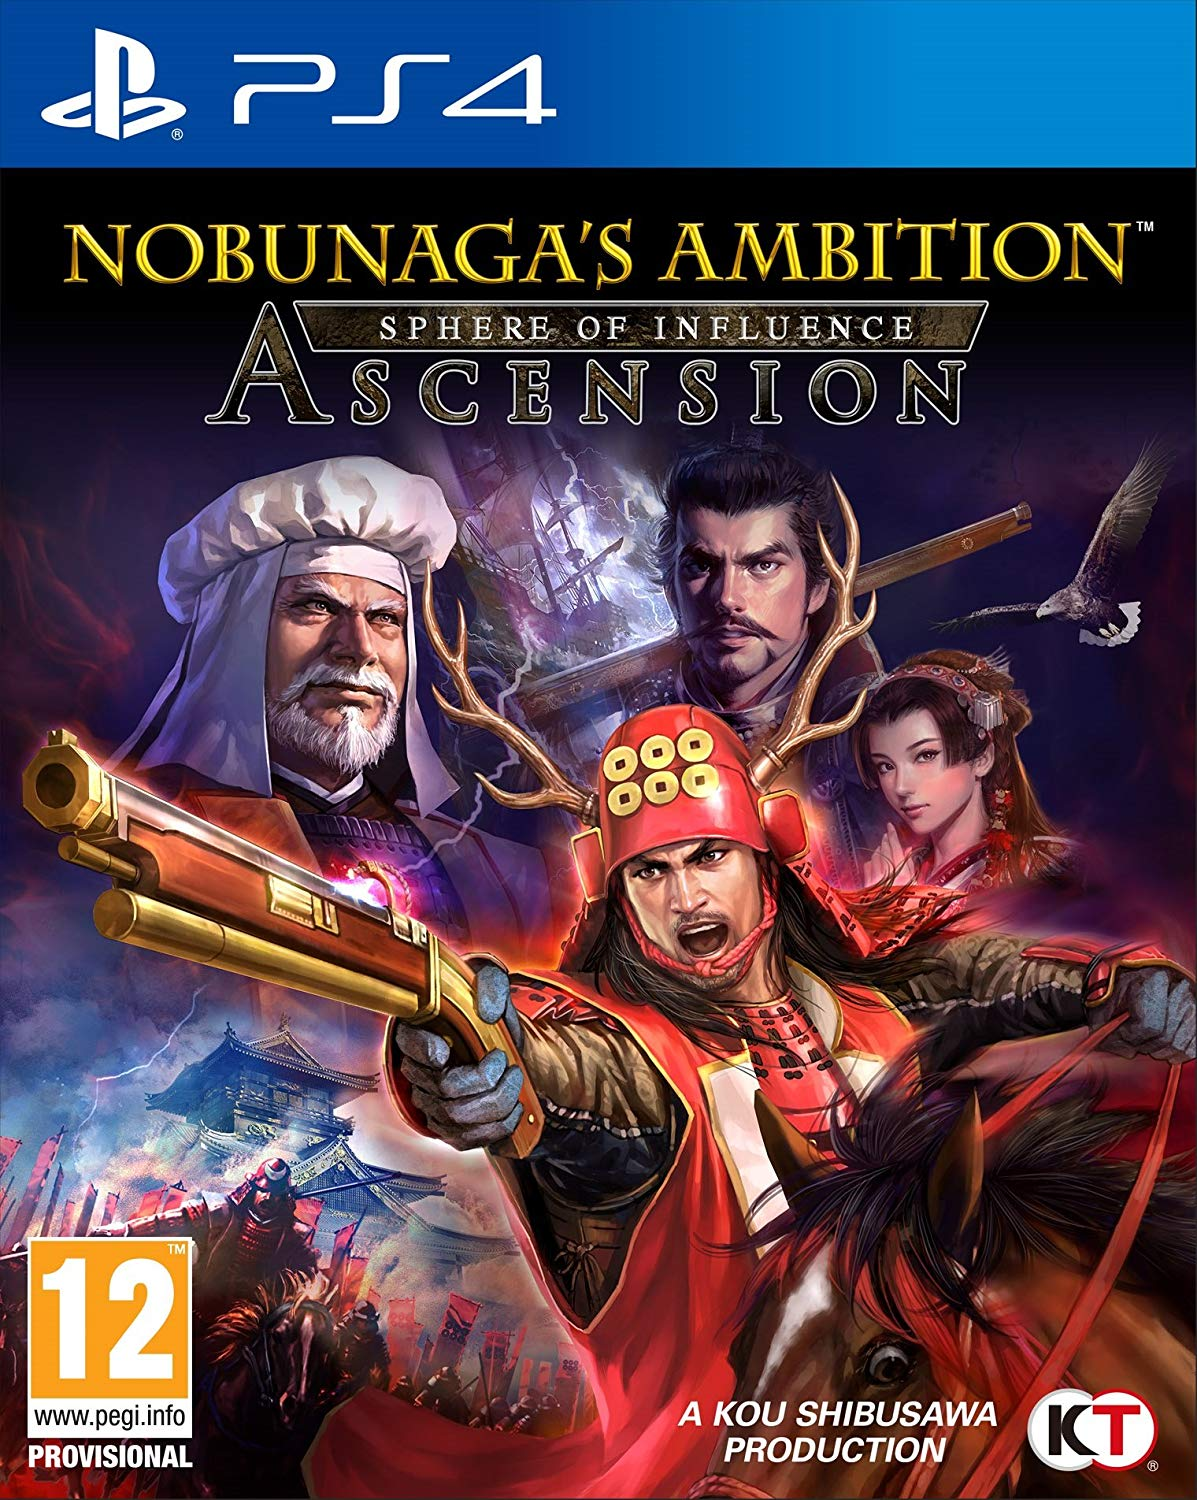 Nobunaga's Ambition: Sphere of Influence - Ascension PS4